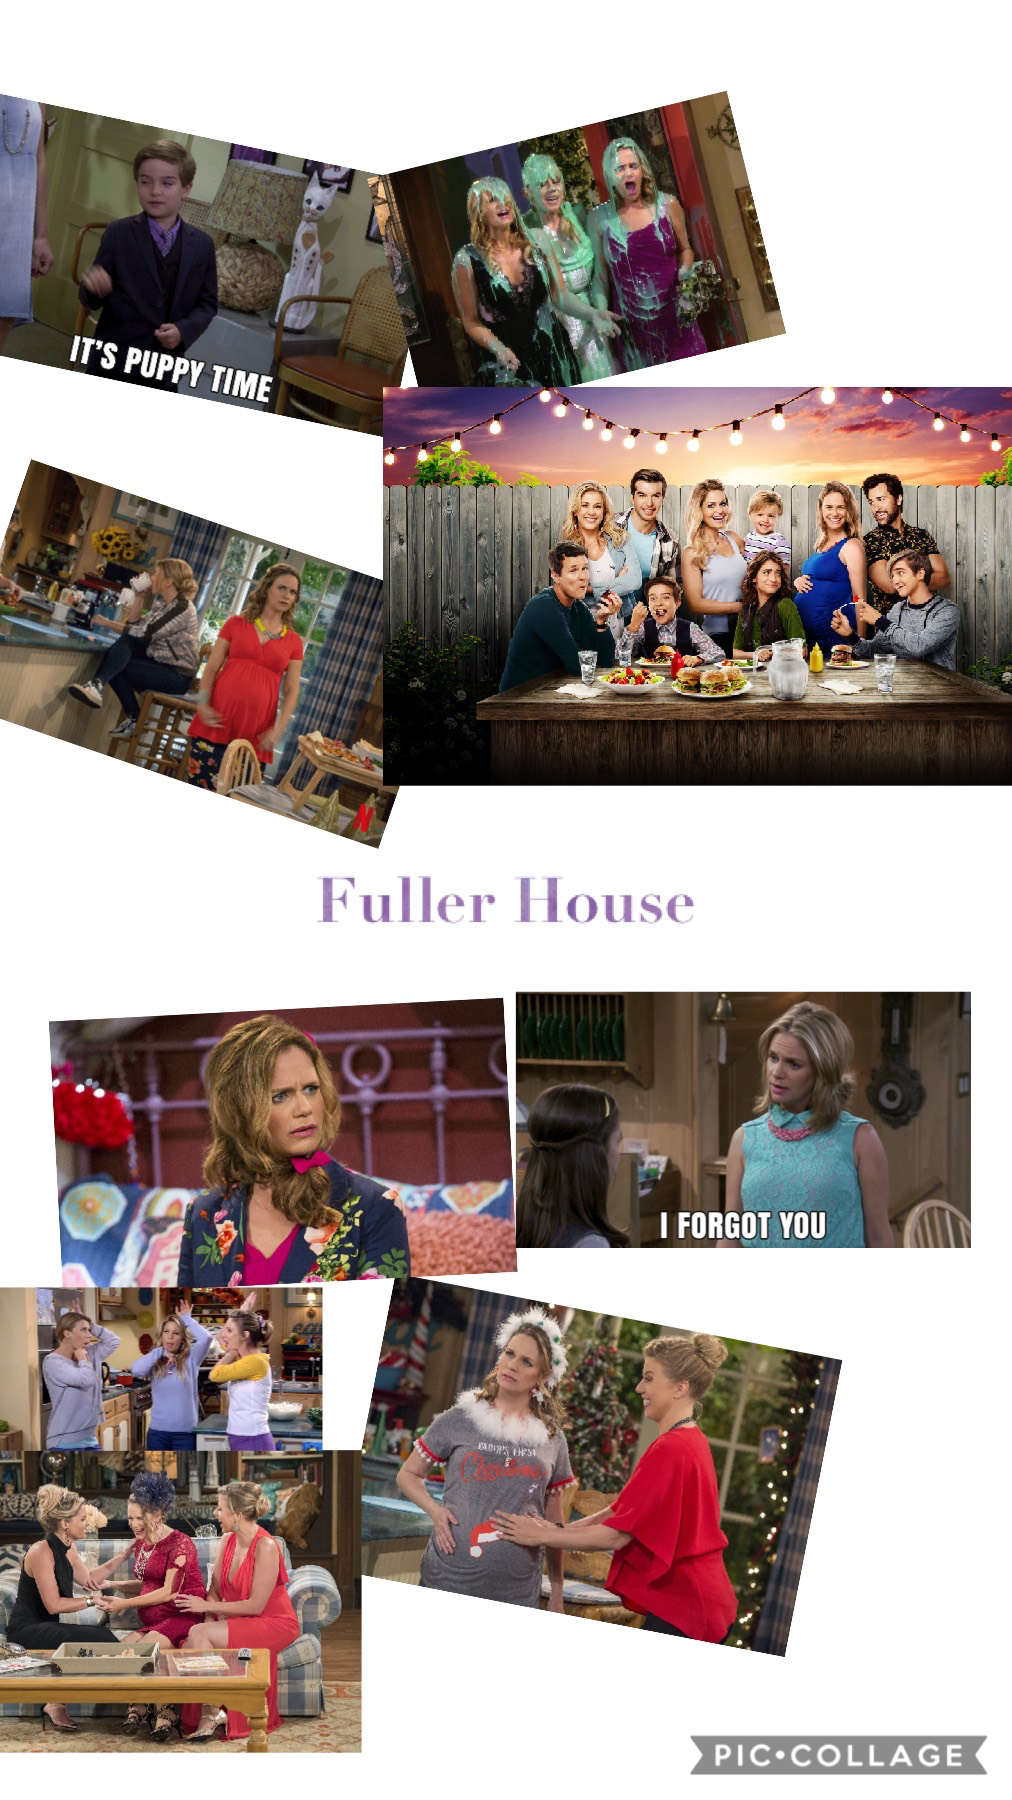 Repost this and like if you love Fuller House! Season 5 out this Fall!